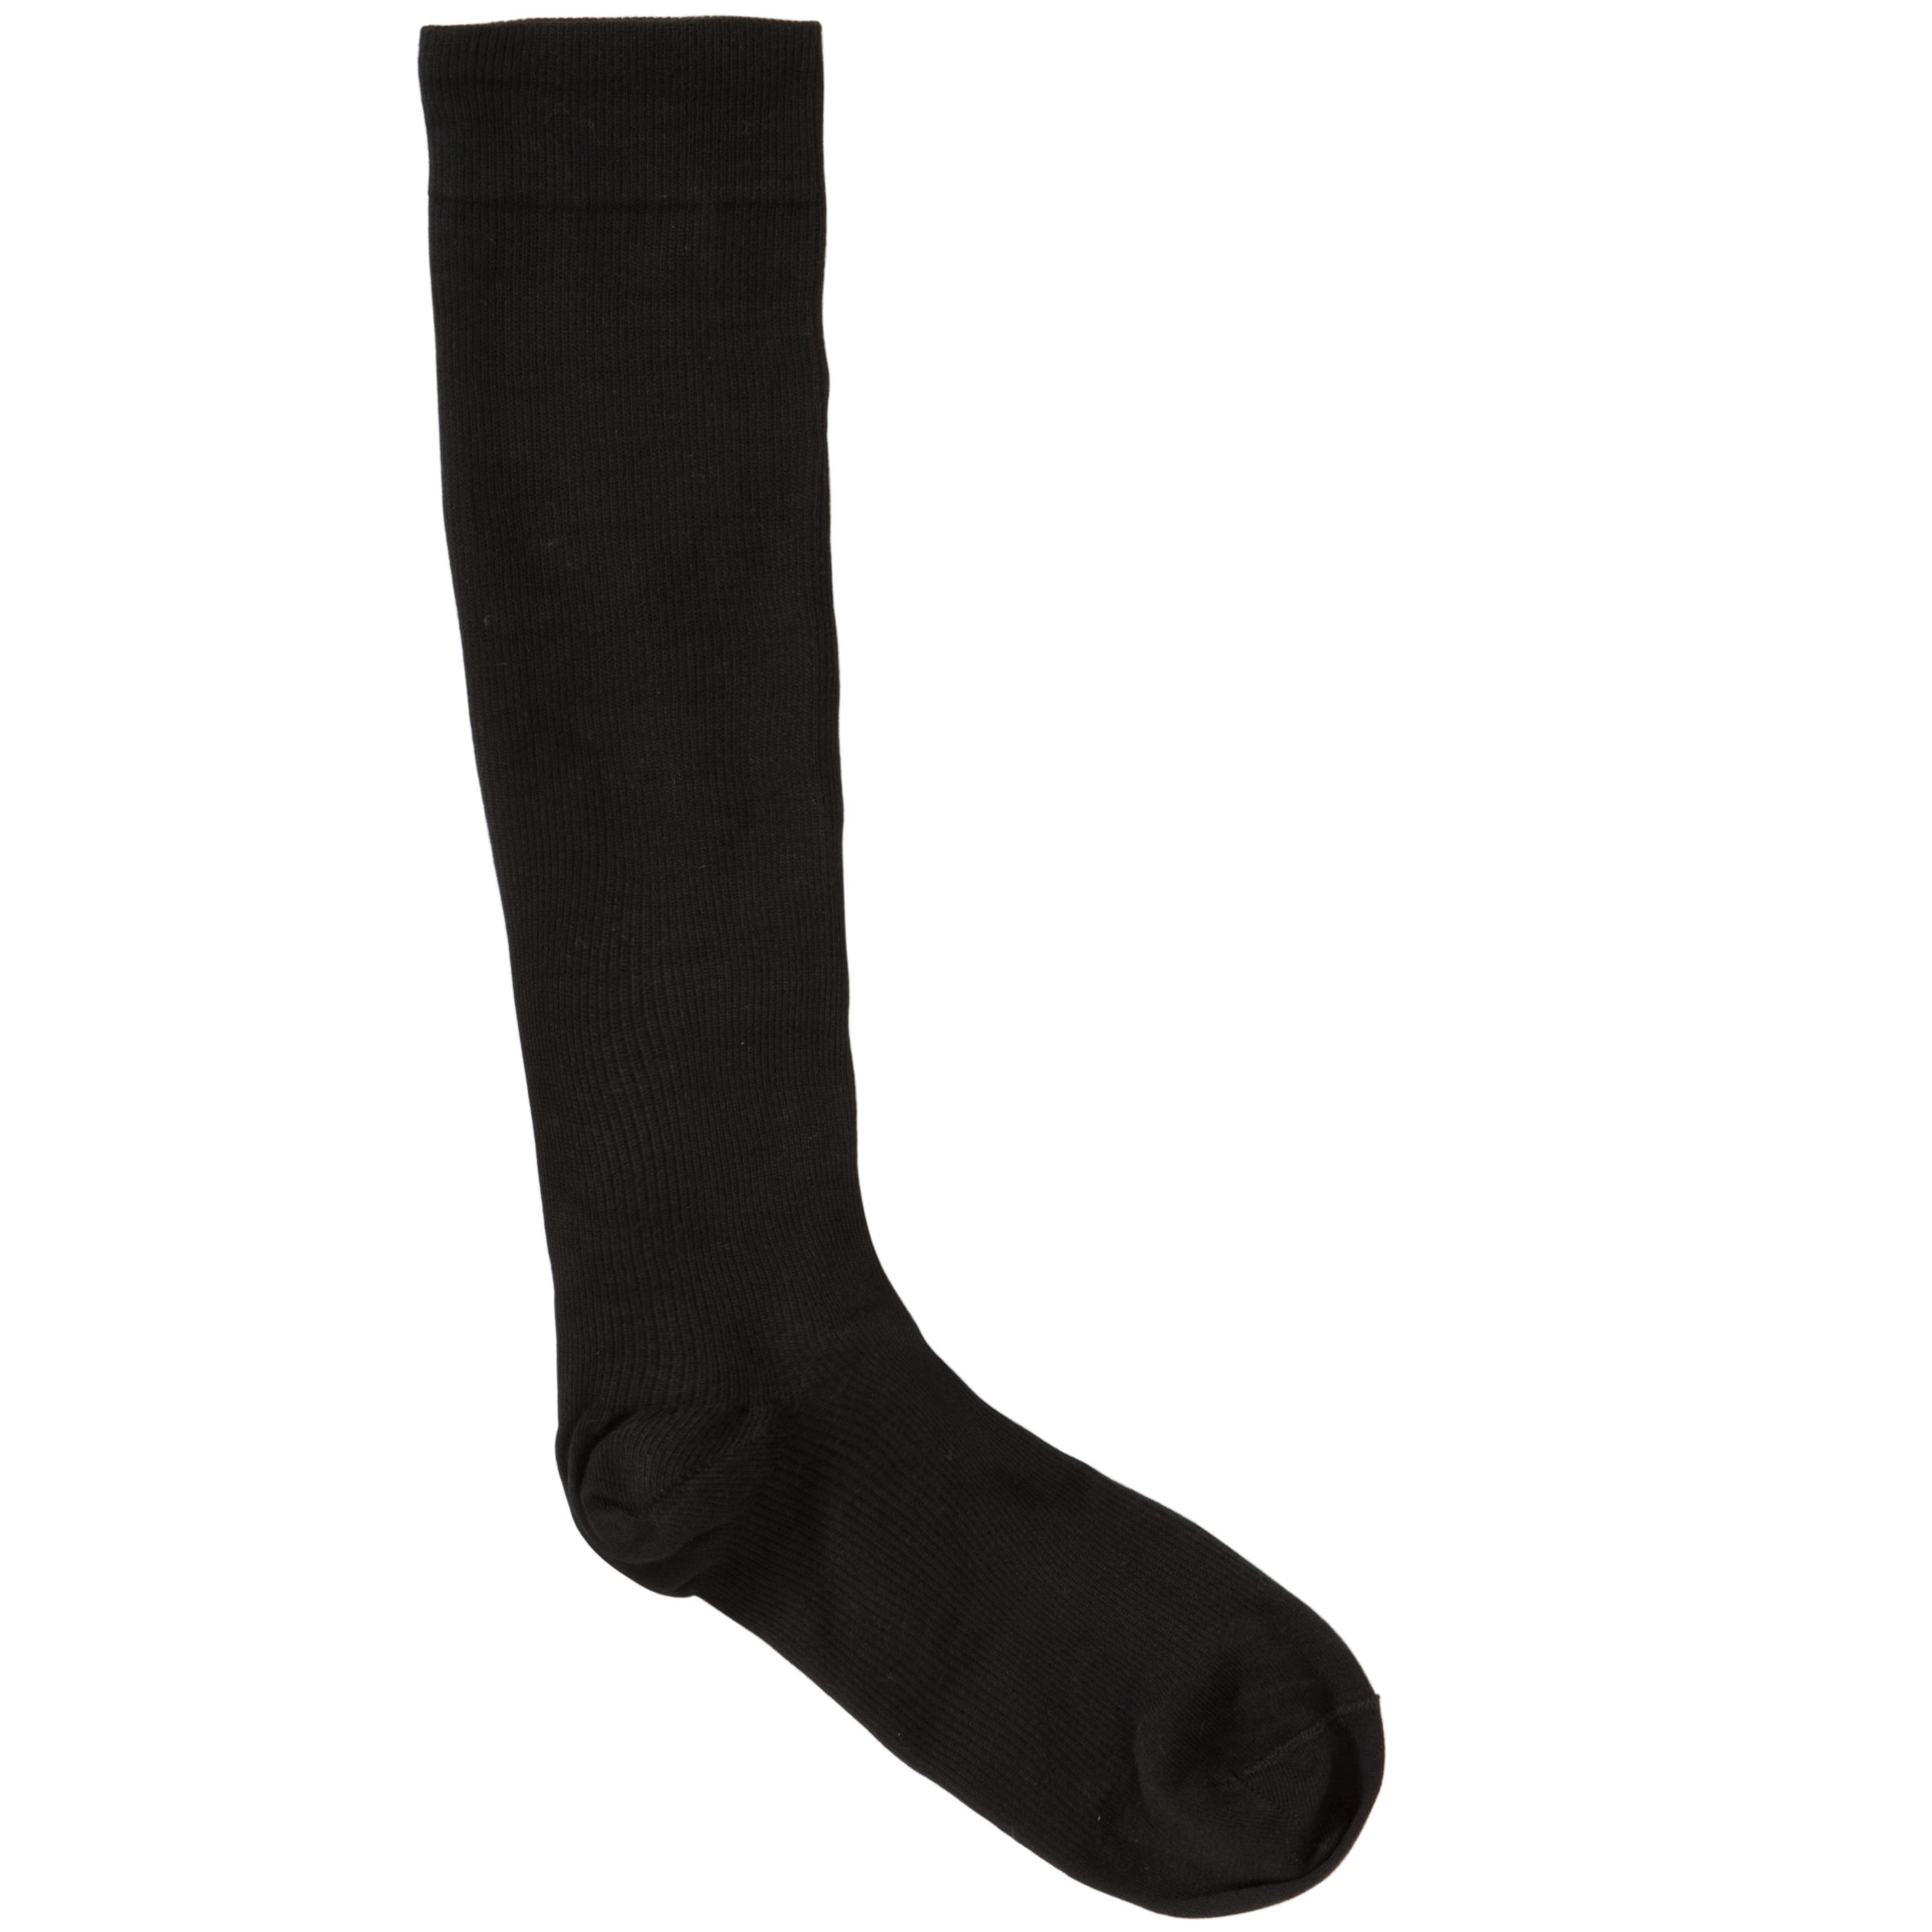 HJ Hall Flysafe Calf High Compression Socks, Black